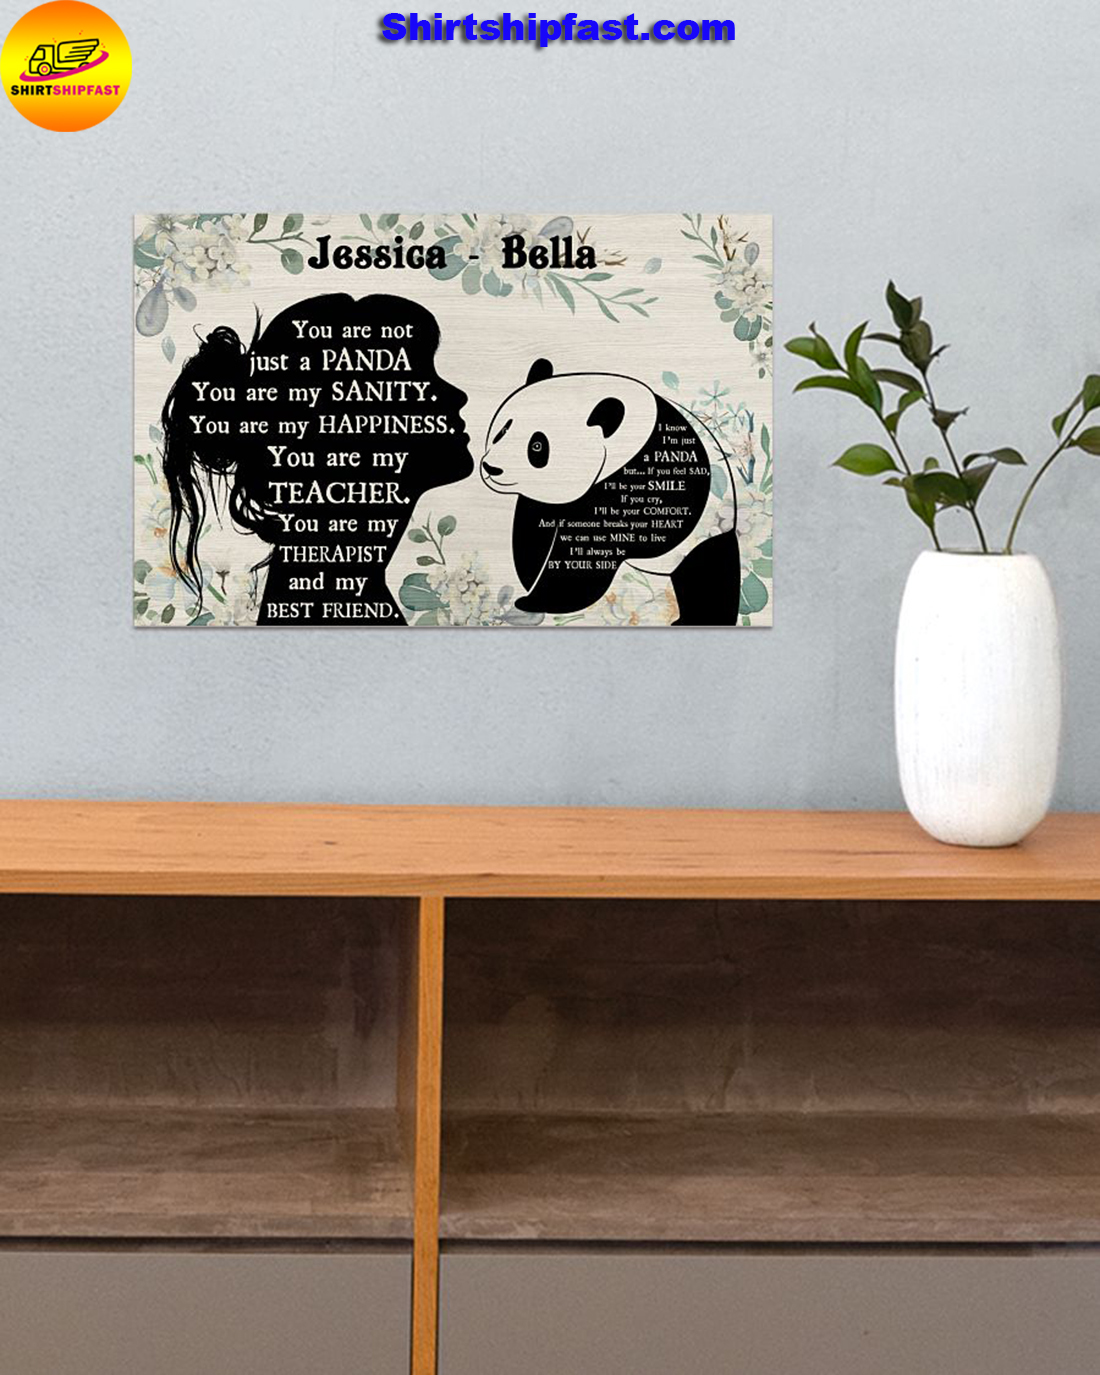 You are not just a panda personalized panda lover poster - Picture 1